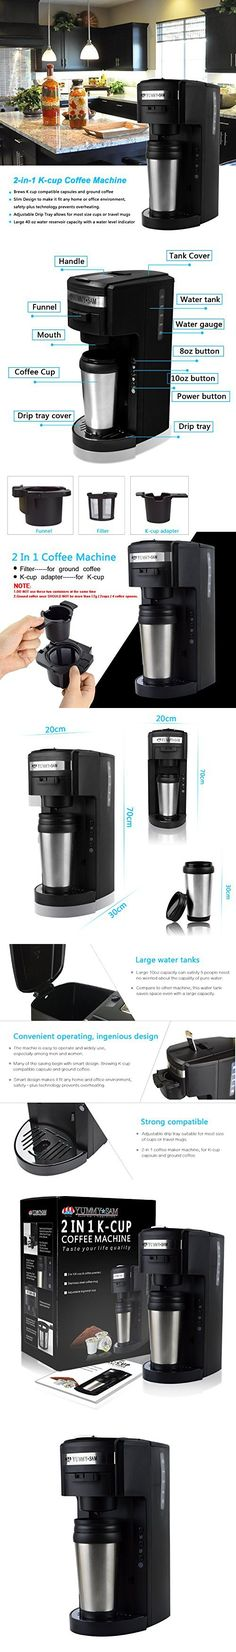 Coffee Maker Machine Yummy Sam 2-in-1 K-cup Capsule Coffee Maker Machine Ground Coffee Single Serve Coffee Maker with Hydroforce Extraction System and Adjustable Dispenser in Black